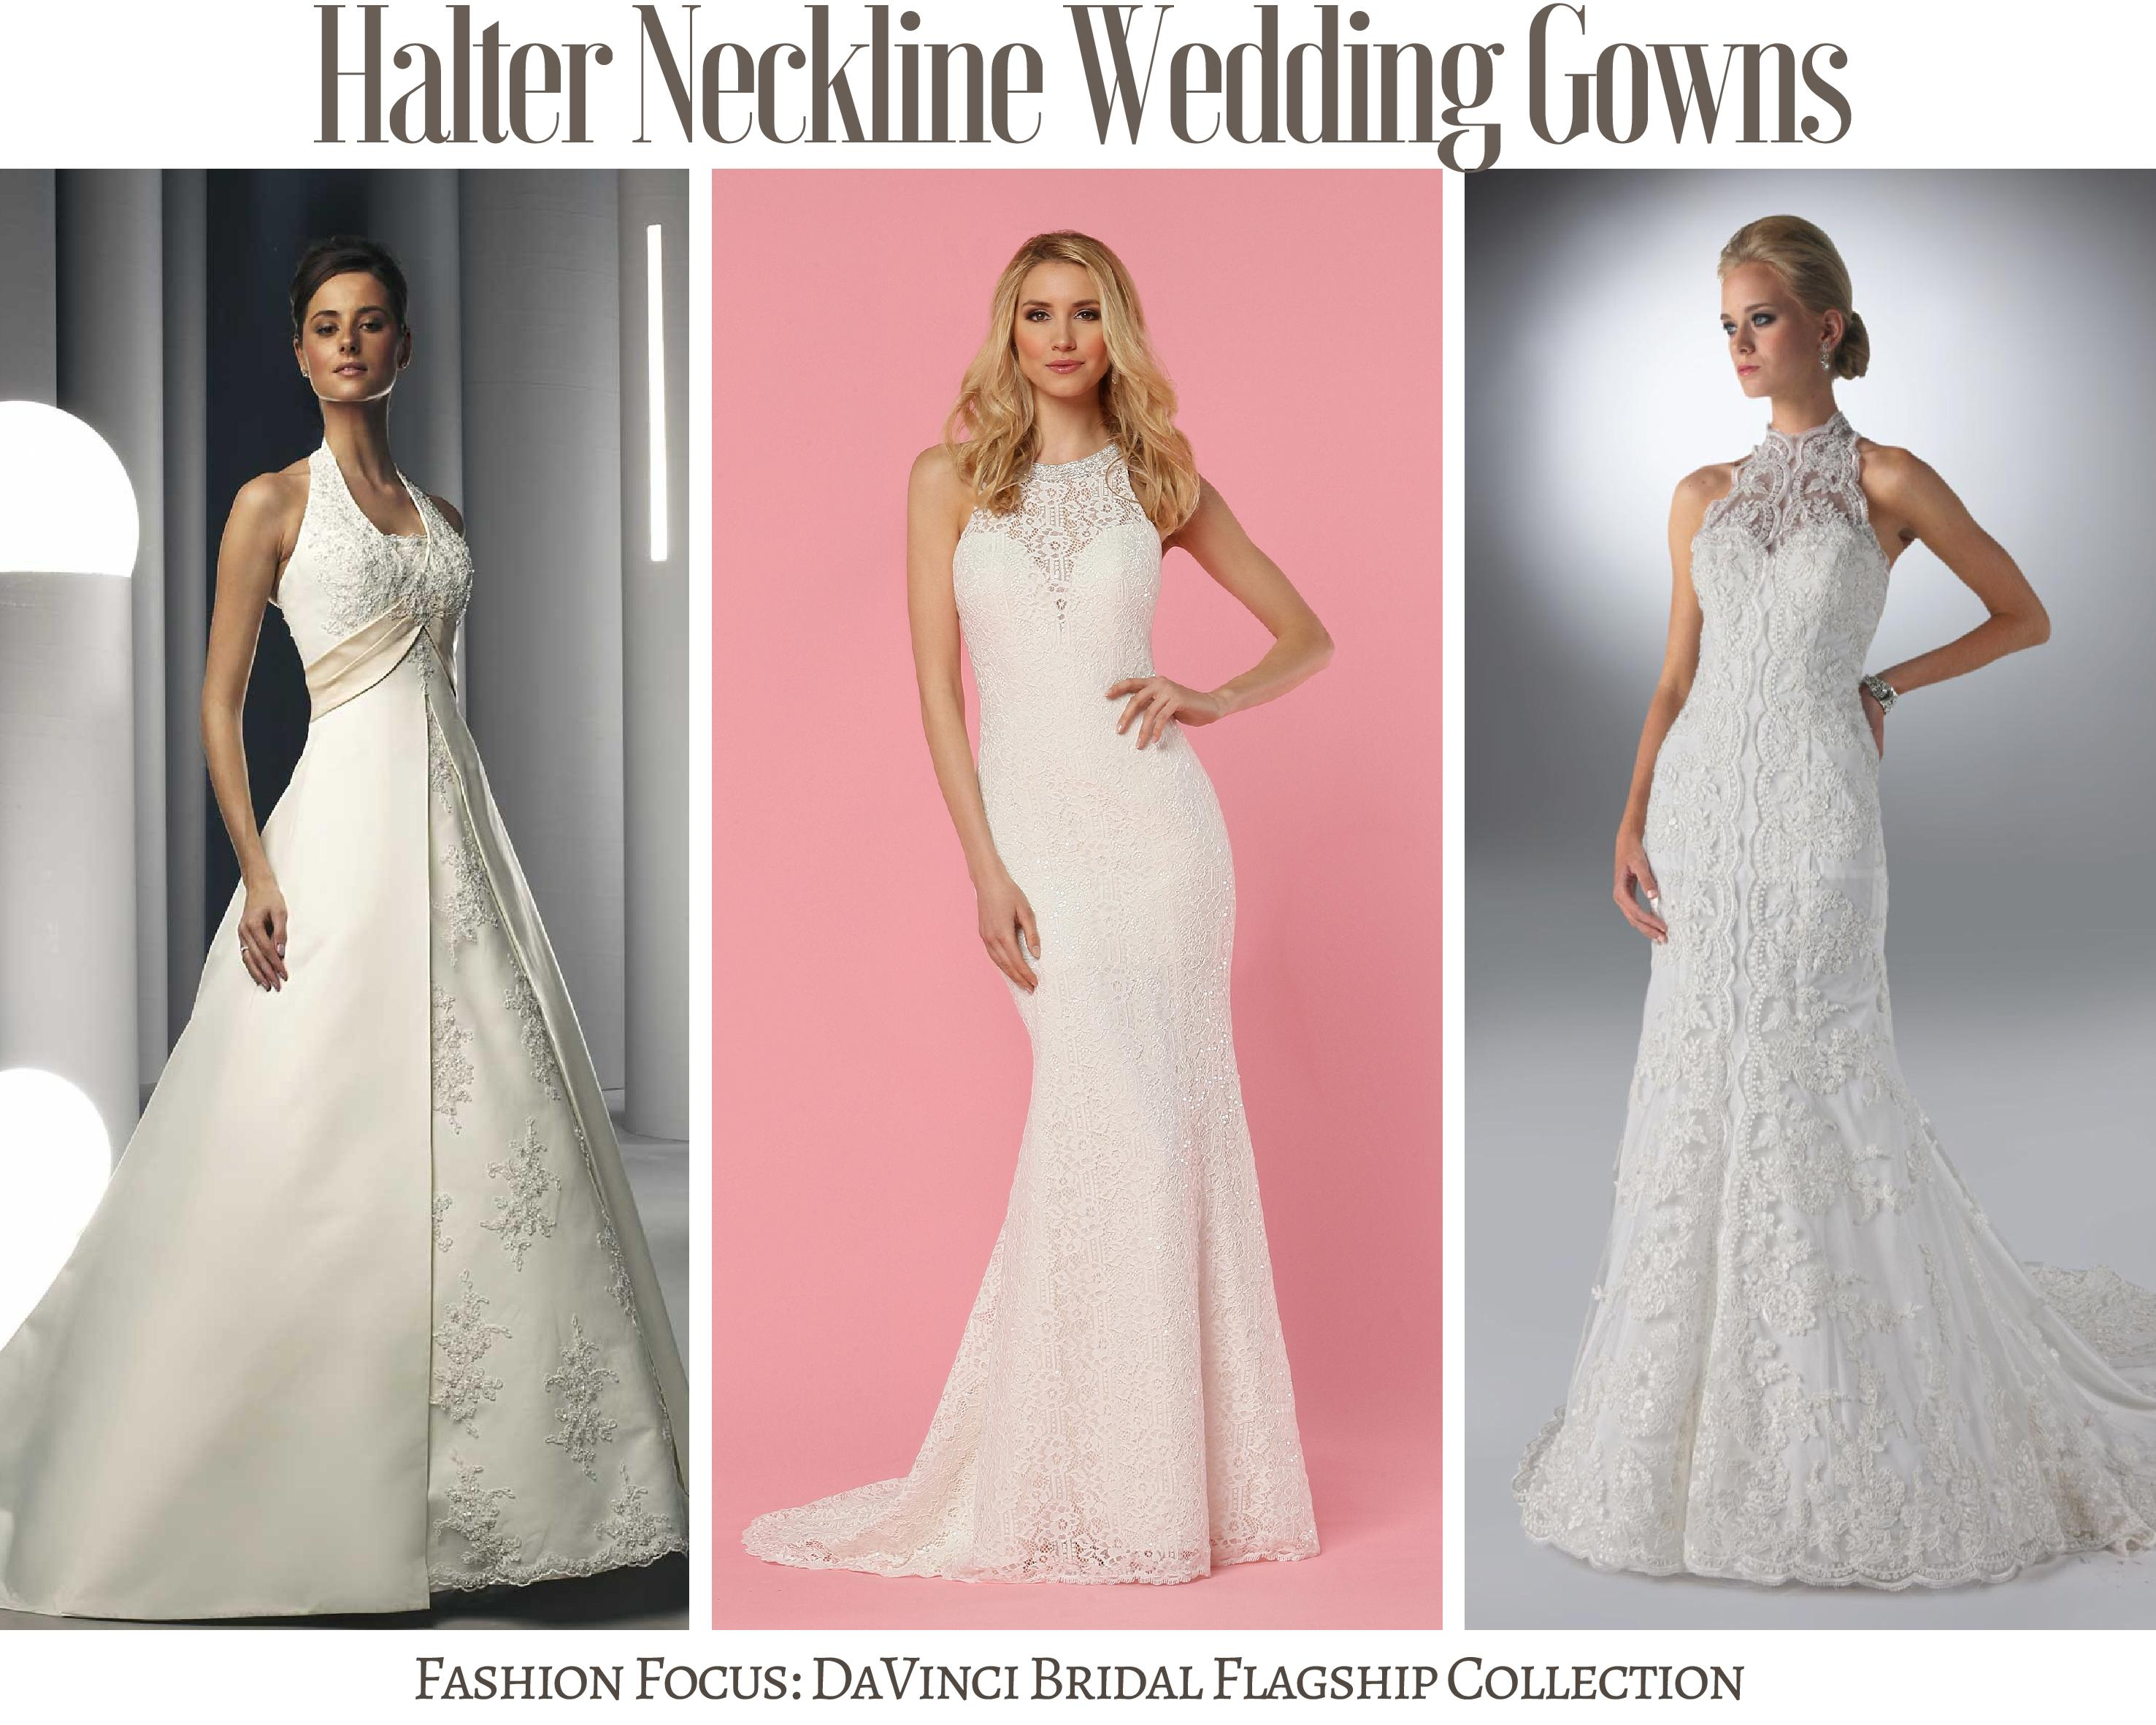 Fashion Focus Halter Wedding Dress Collection